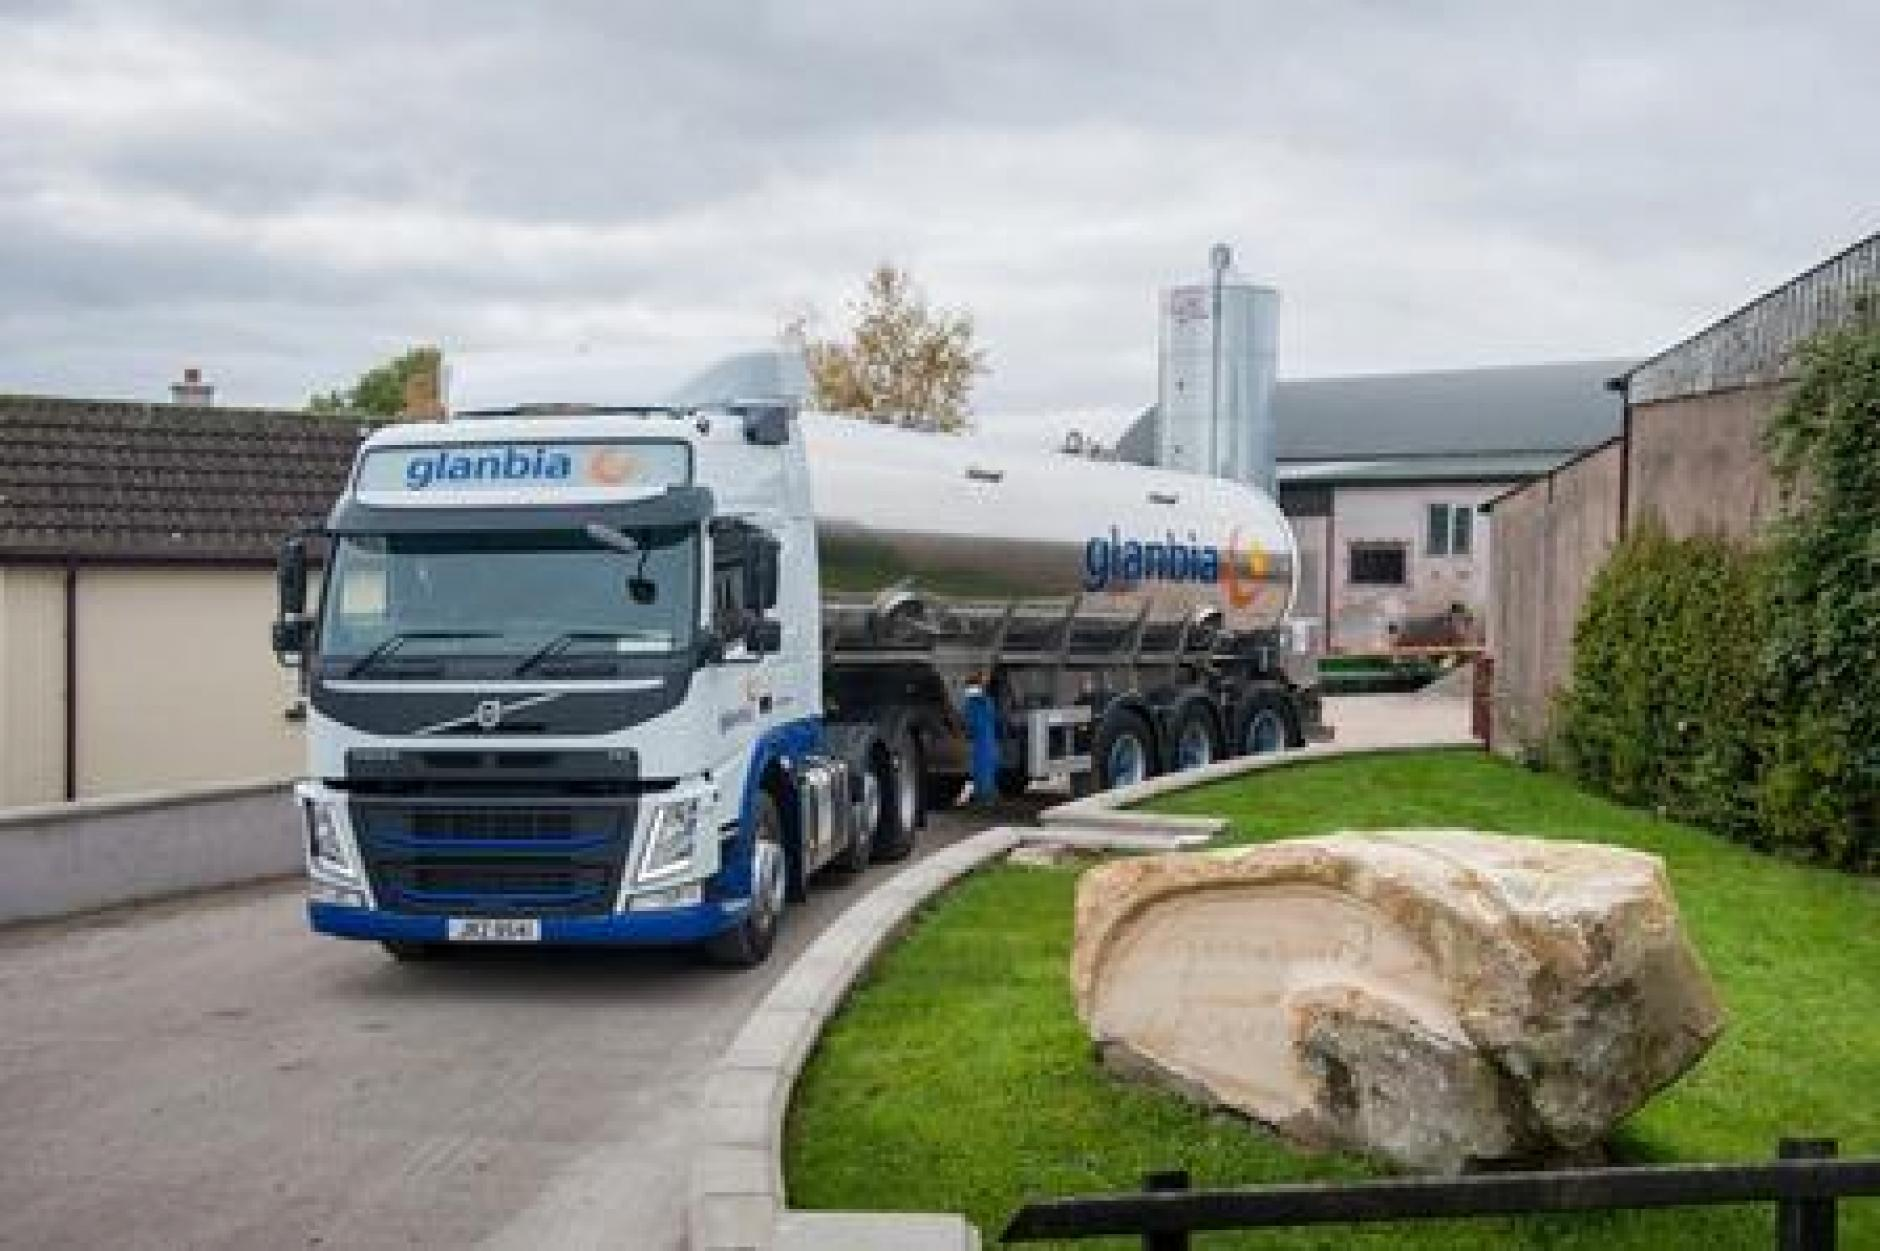 Cars Northern Ireland Used Cars Ni Second Hand Cars For: Dennison Supplies Volvo Trucks For Northern Ireland Milk